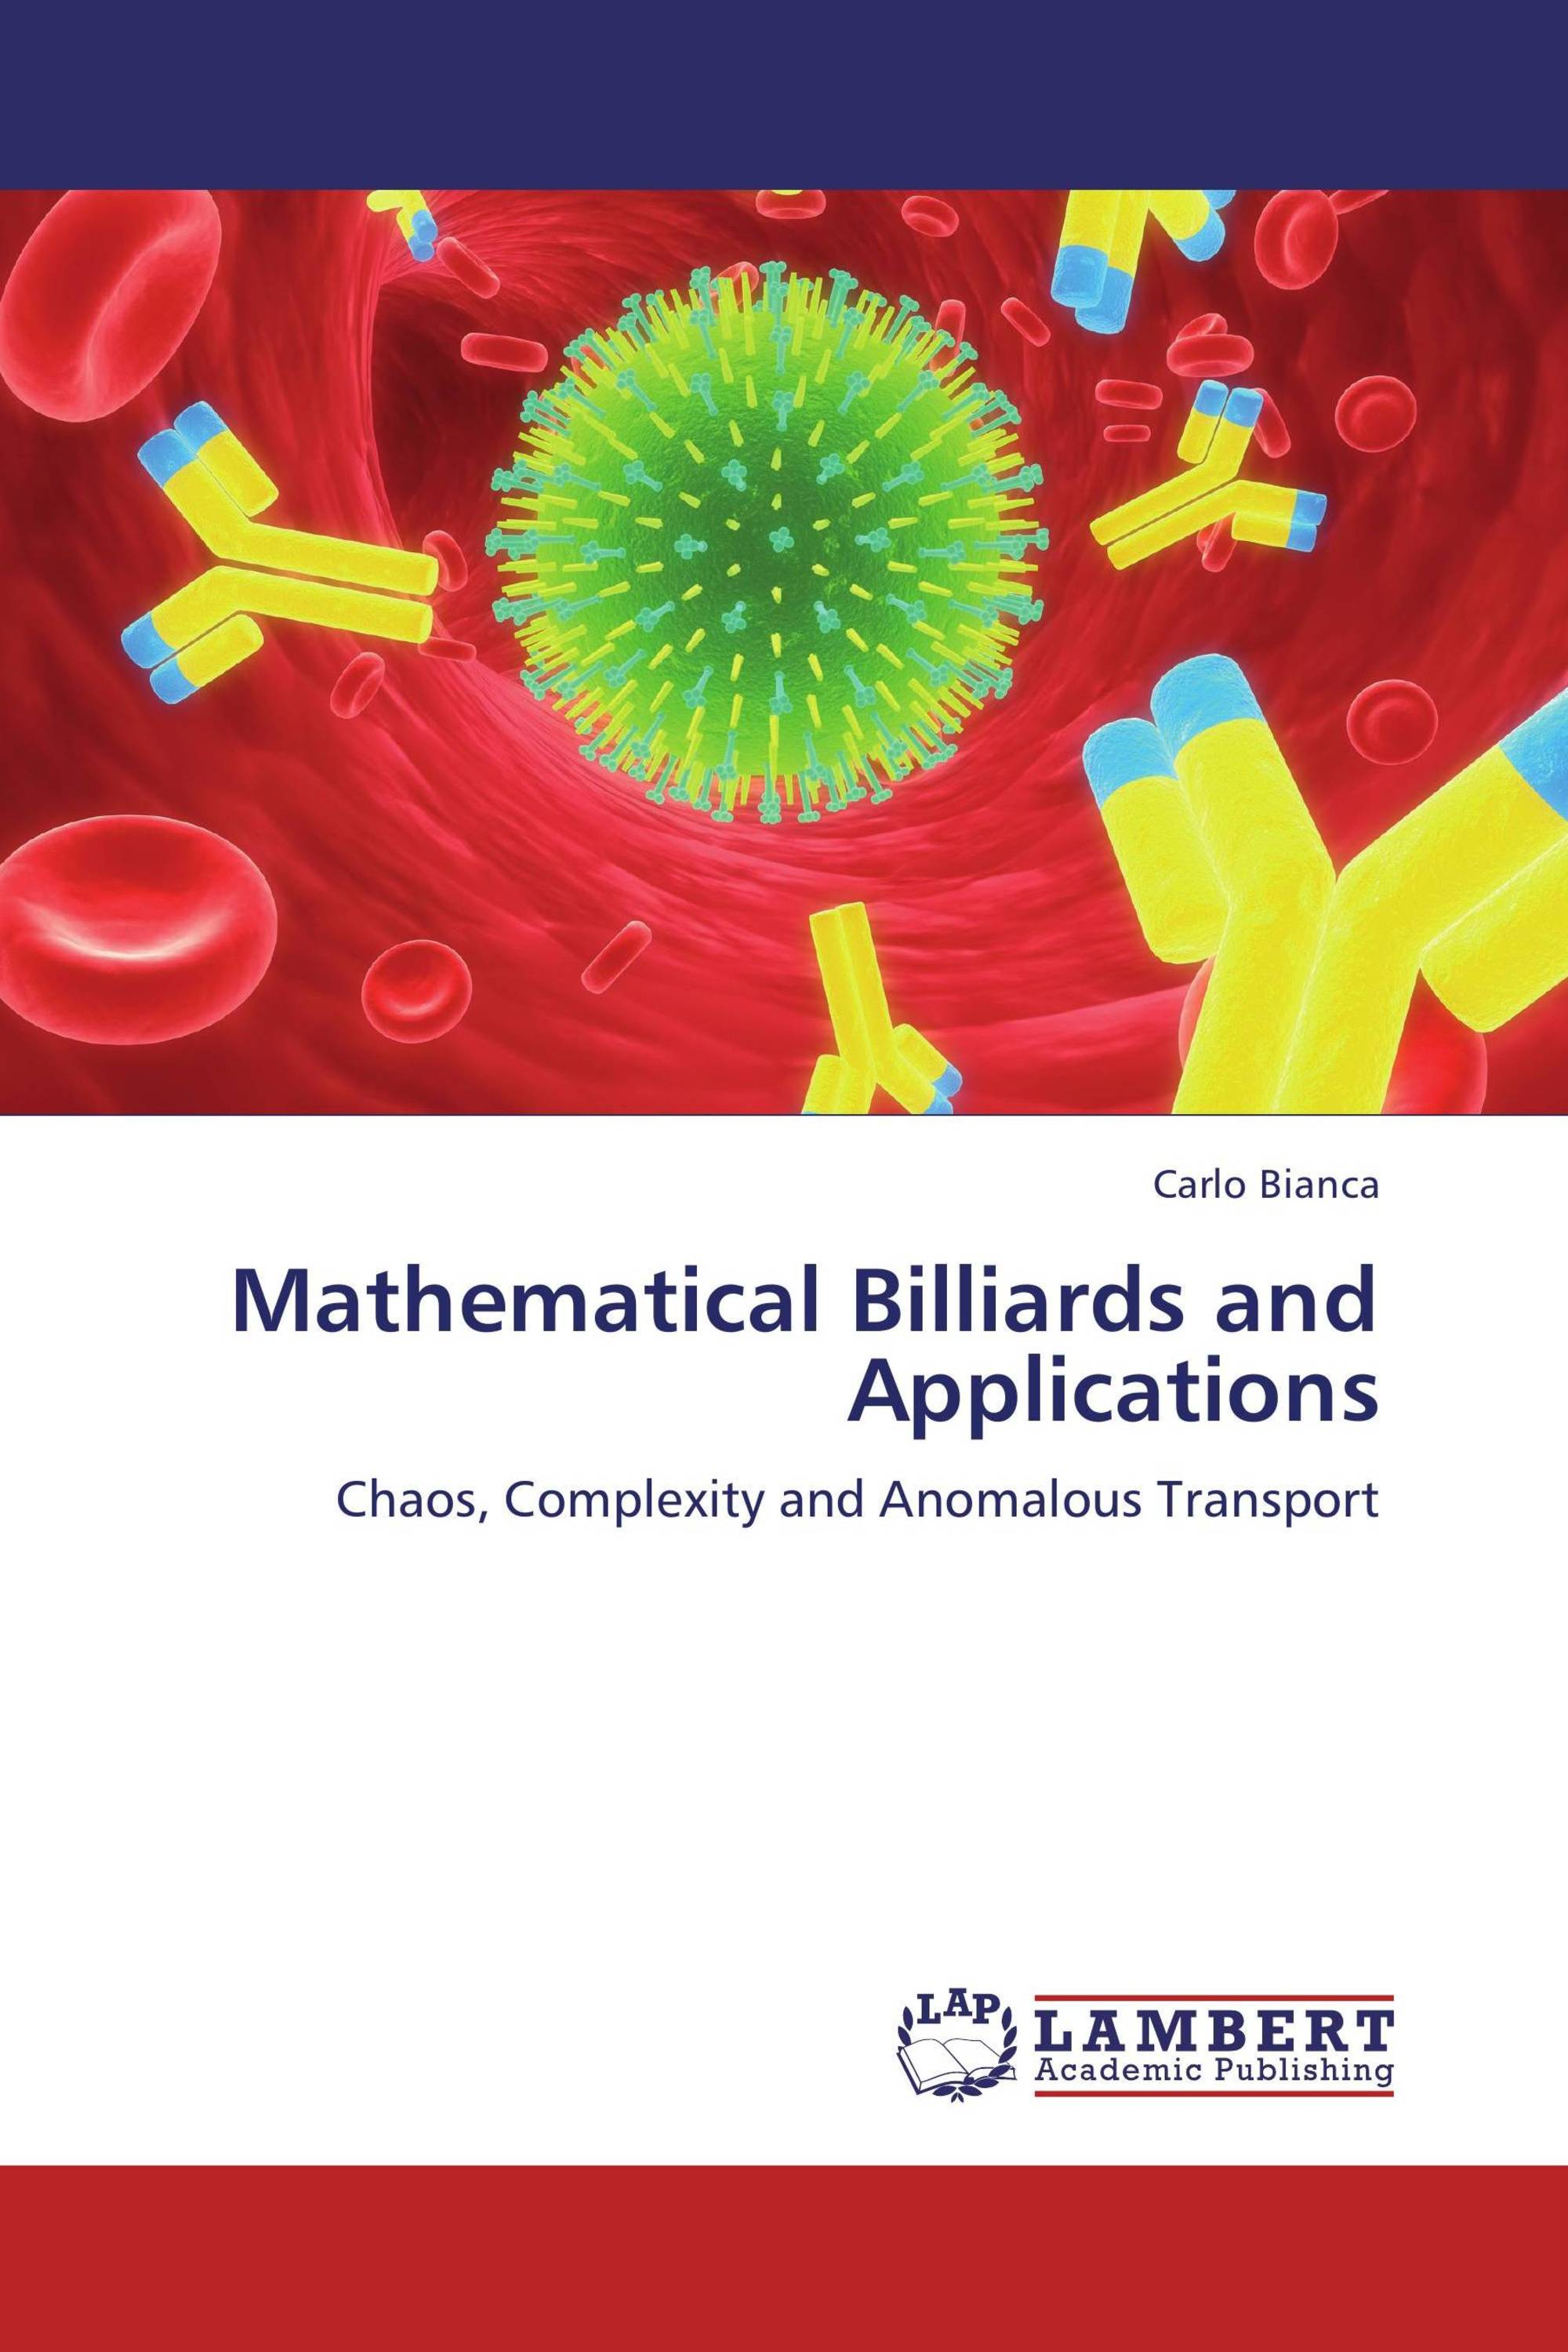 Mathematical Billiards and Applications